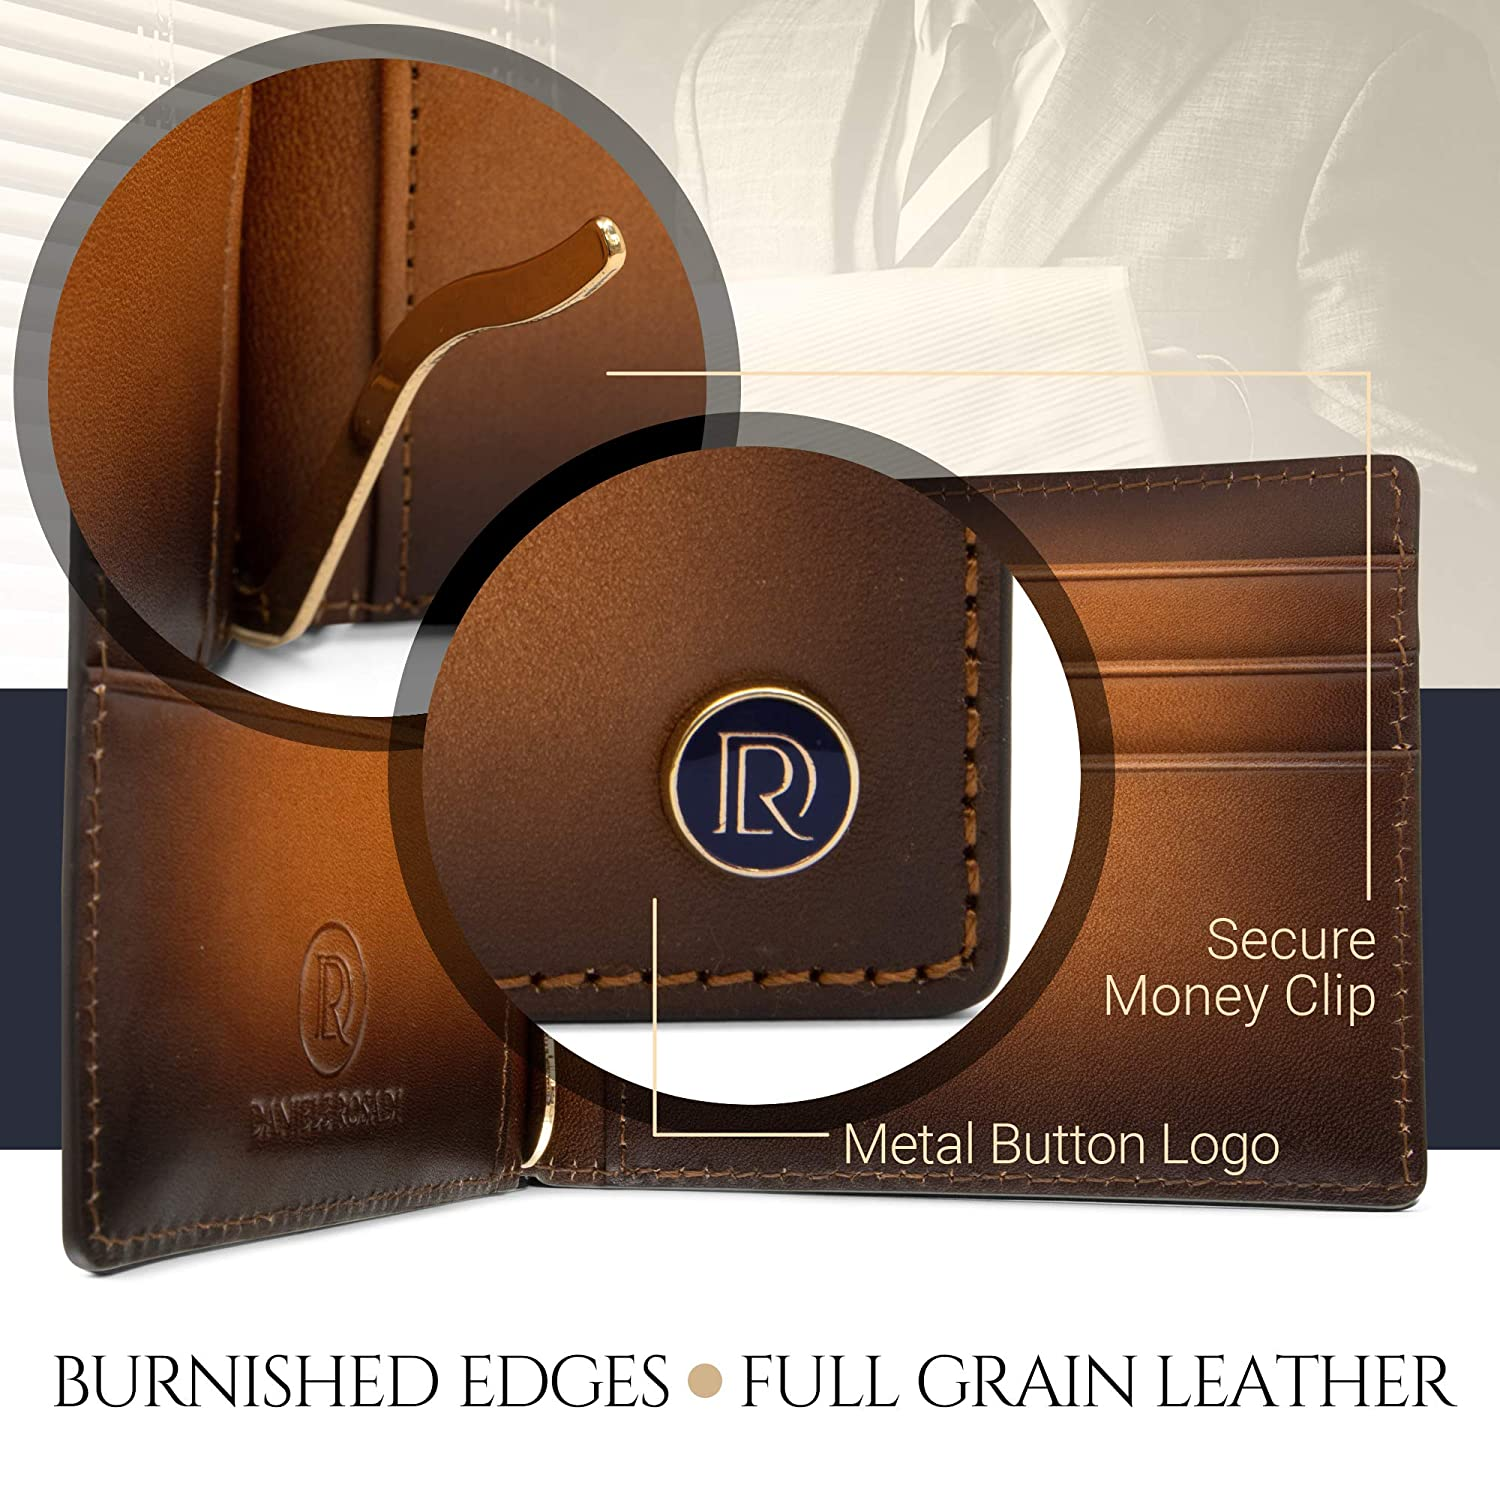 Stylish Mens Bifold Wallet with Money Clip Slim Front Pocket Wallet for Men with Card and Cash Holder Classic Style Bifolds Brown Cognac Sleek Full Grain Leather